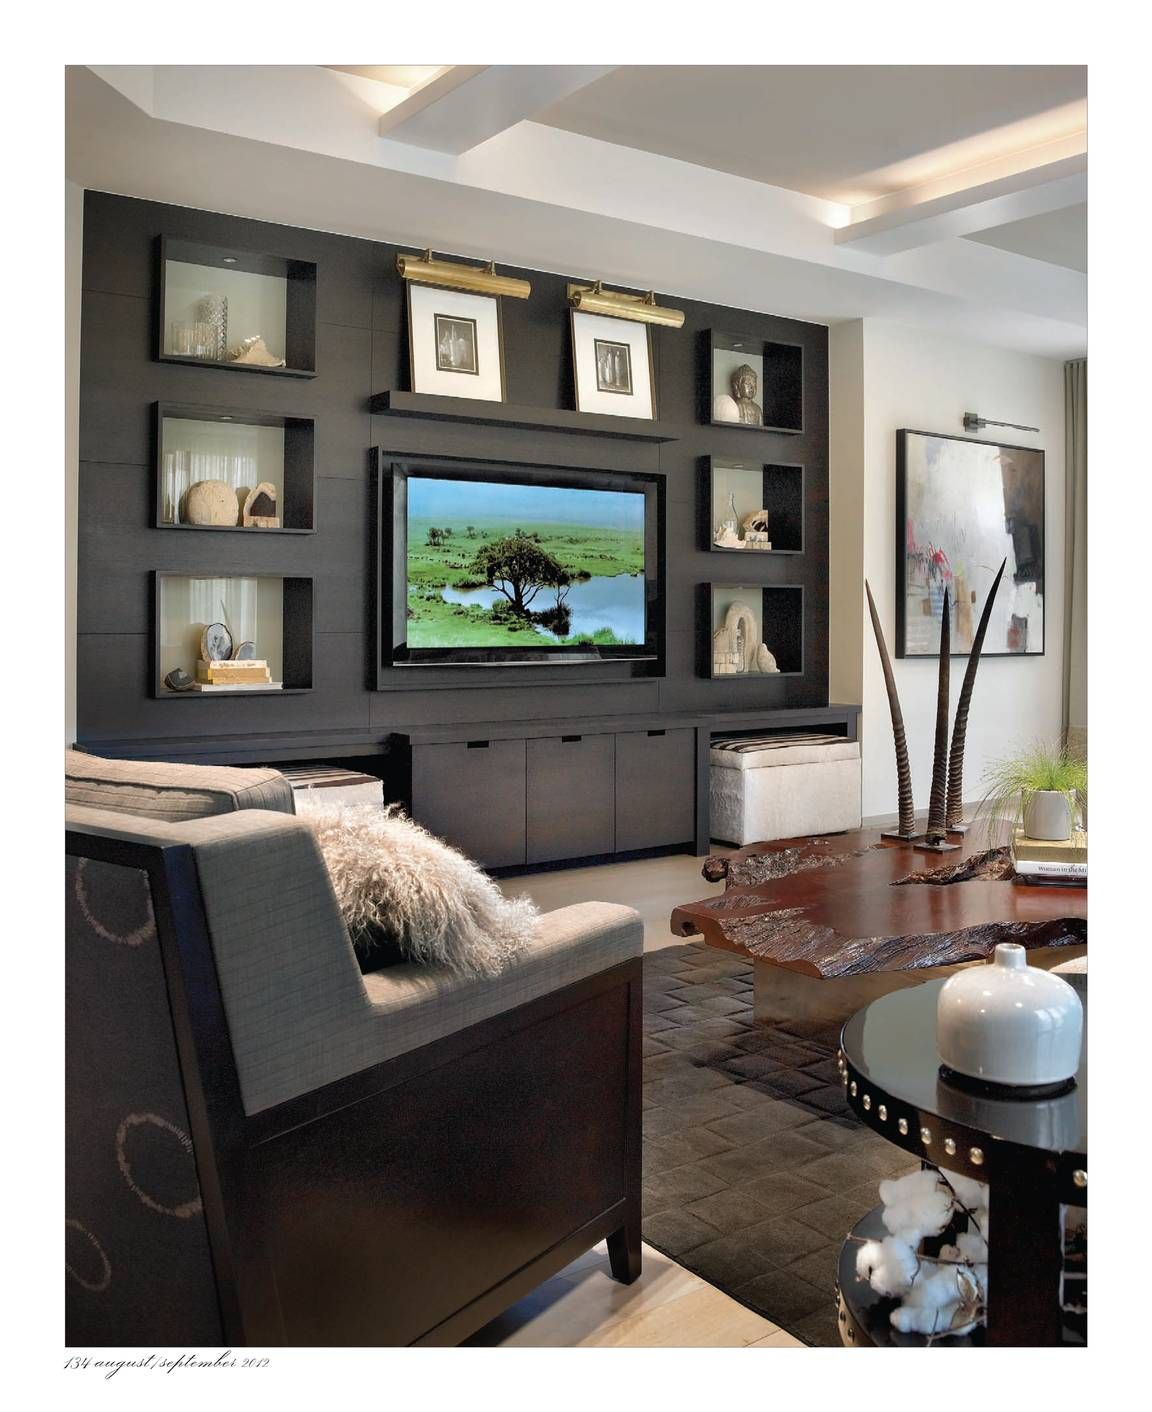 Interiors - August/September 2012 - Page 134 | Basements & Game ...